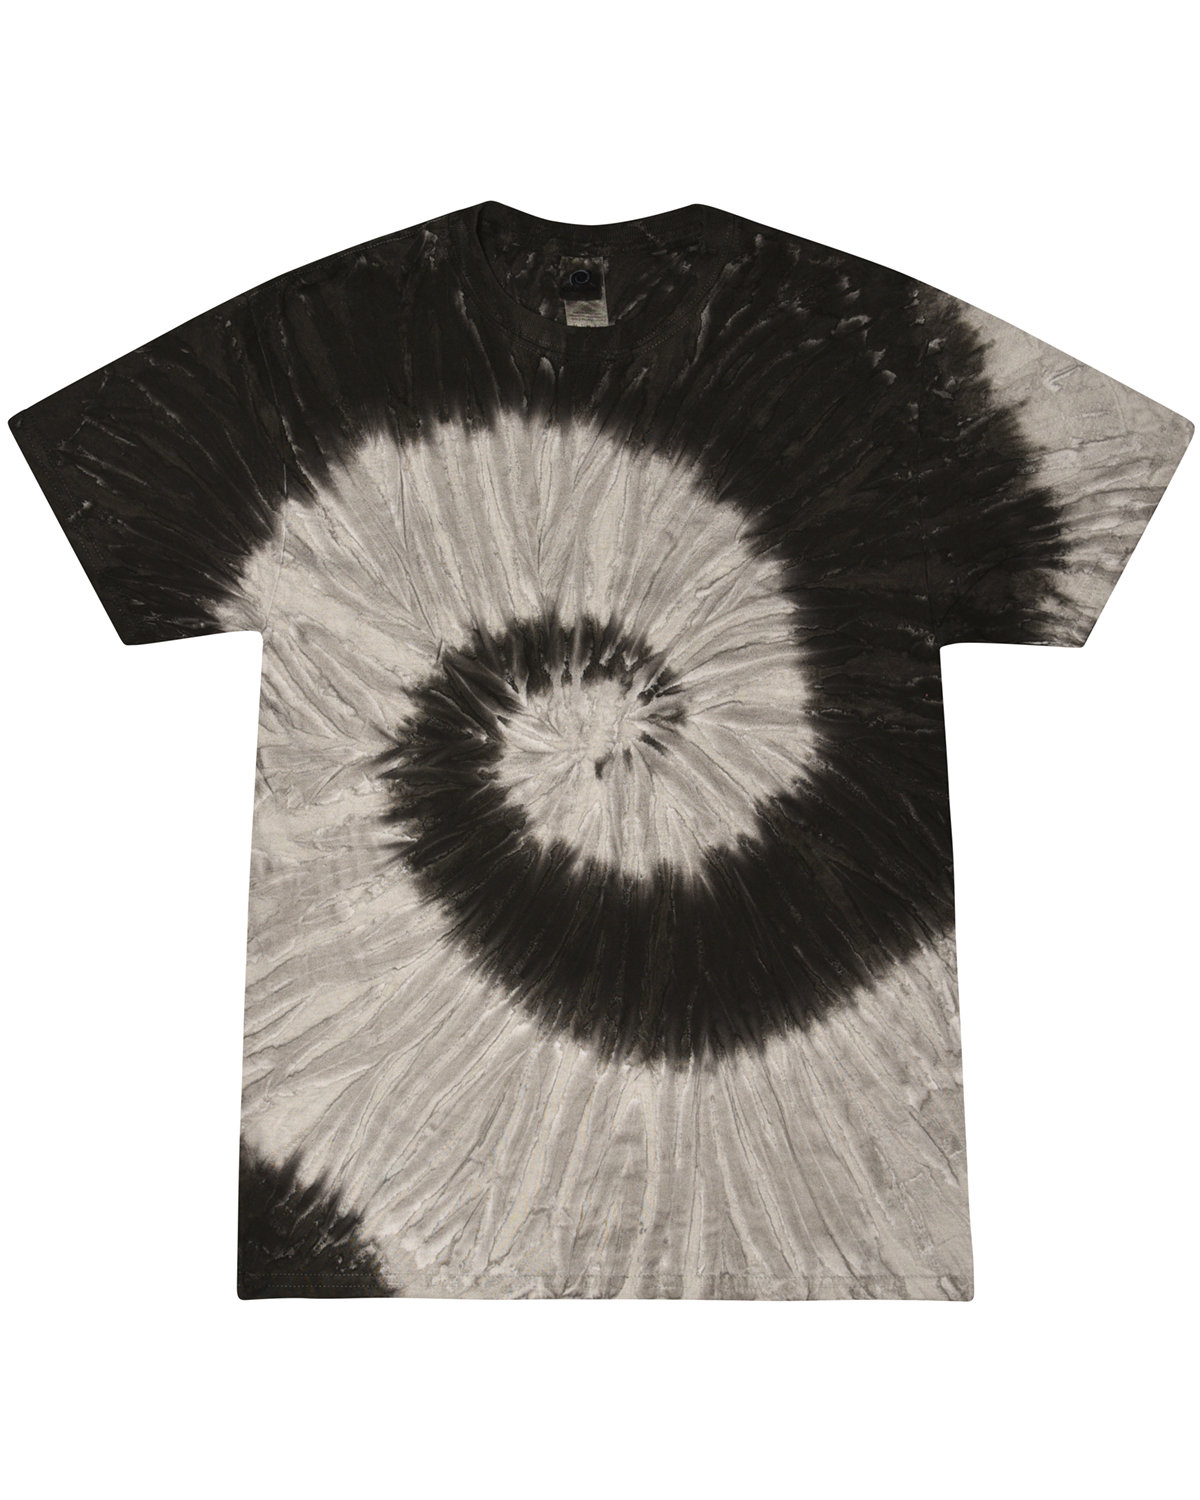 Tie-Dye Adult 5.4 oz., 100% Cotton T-Shirt BLACK RAINBOW